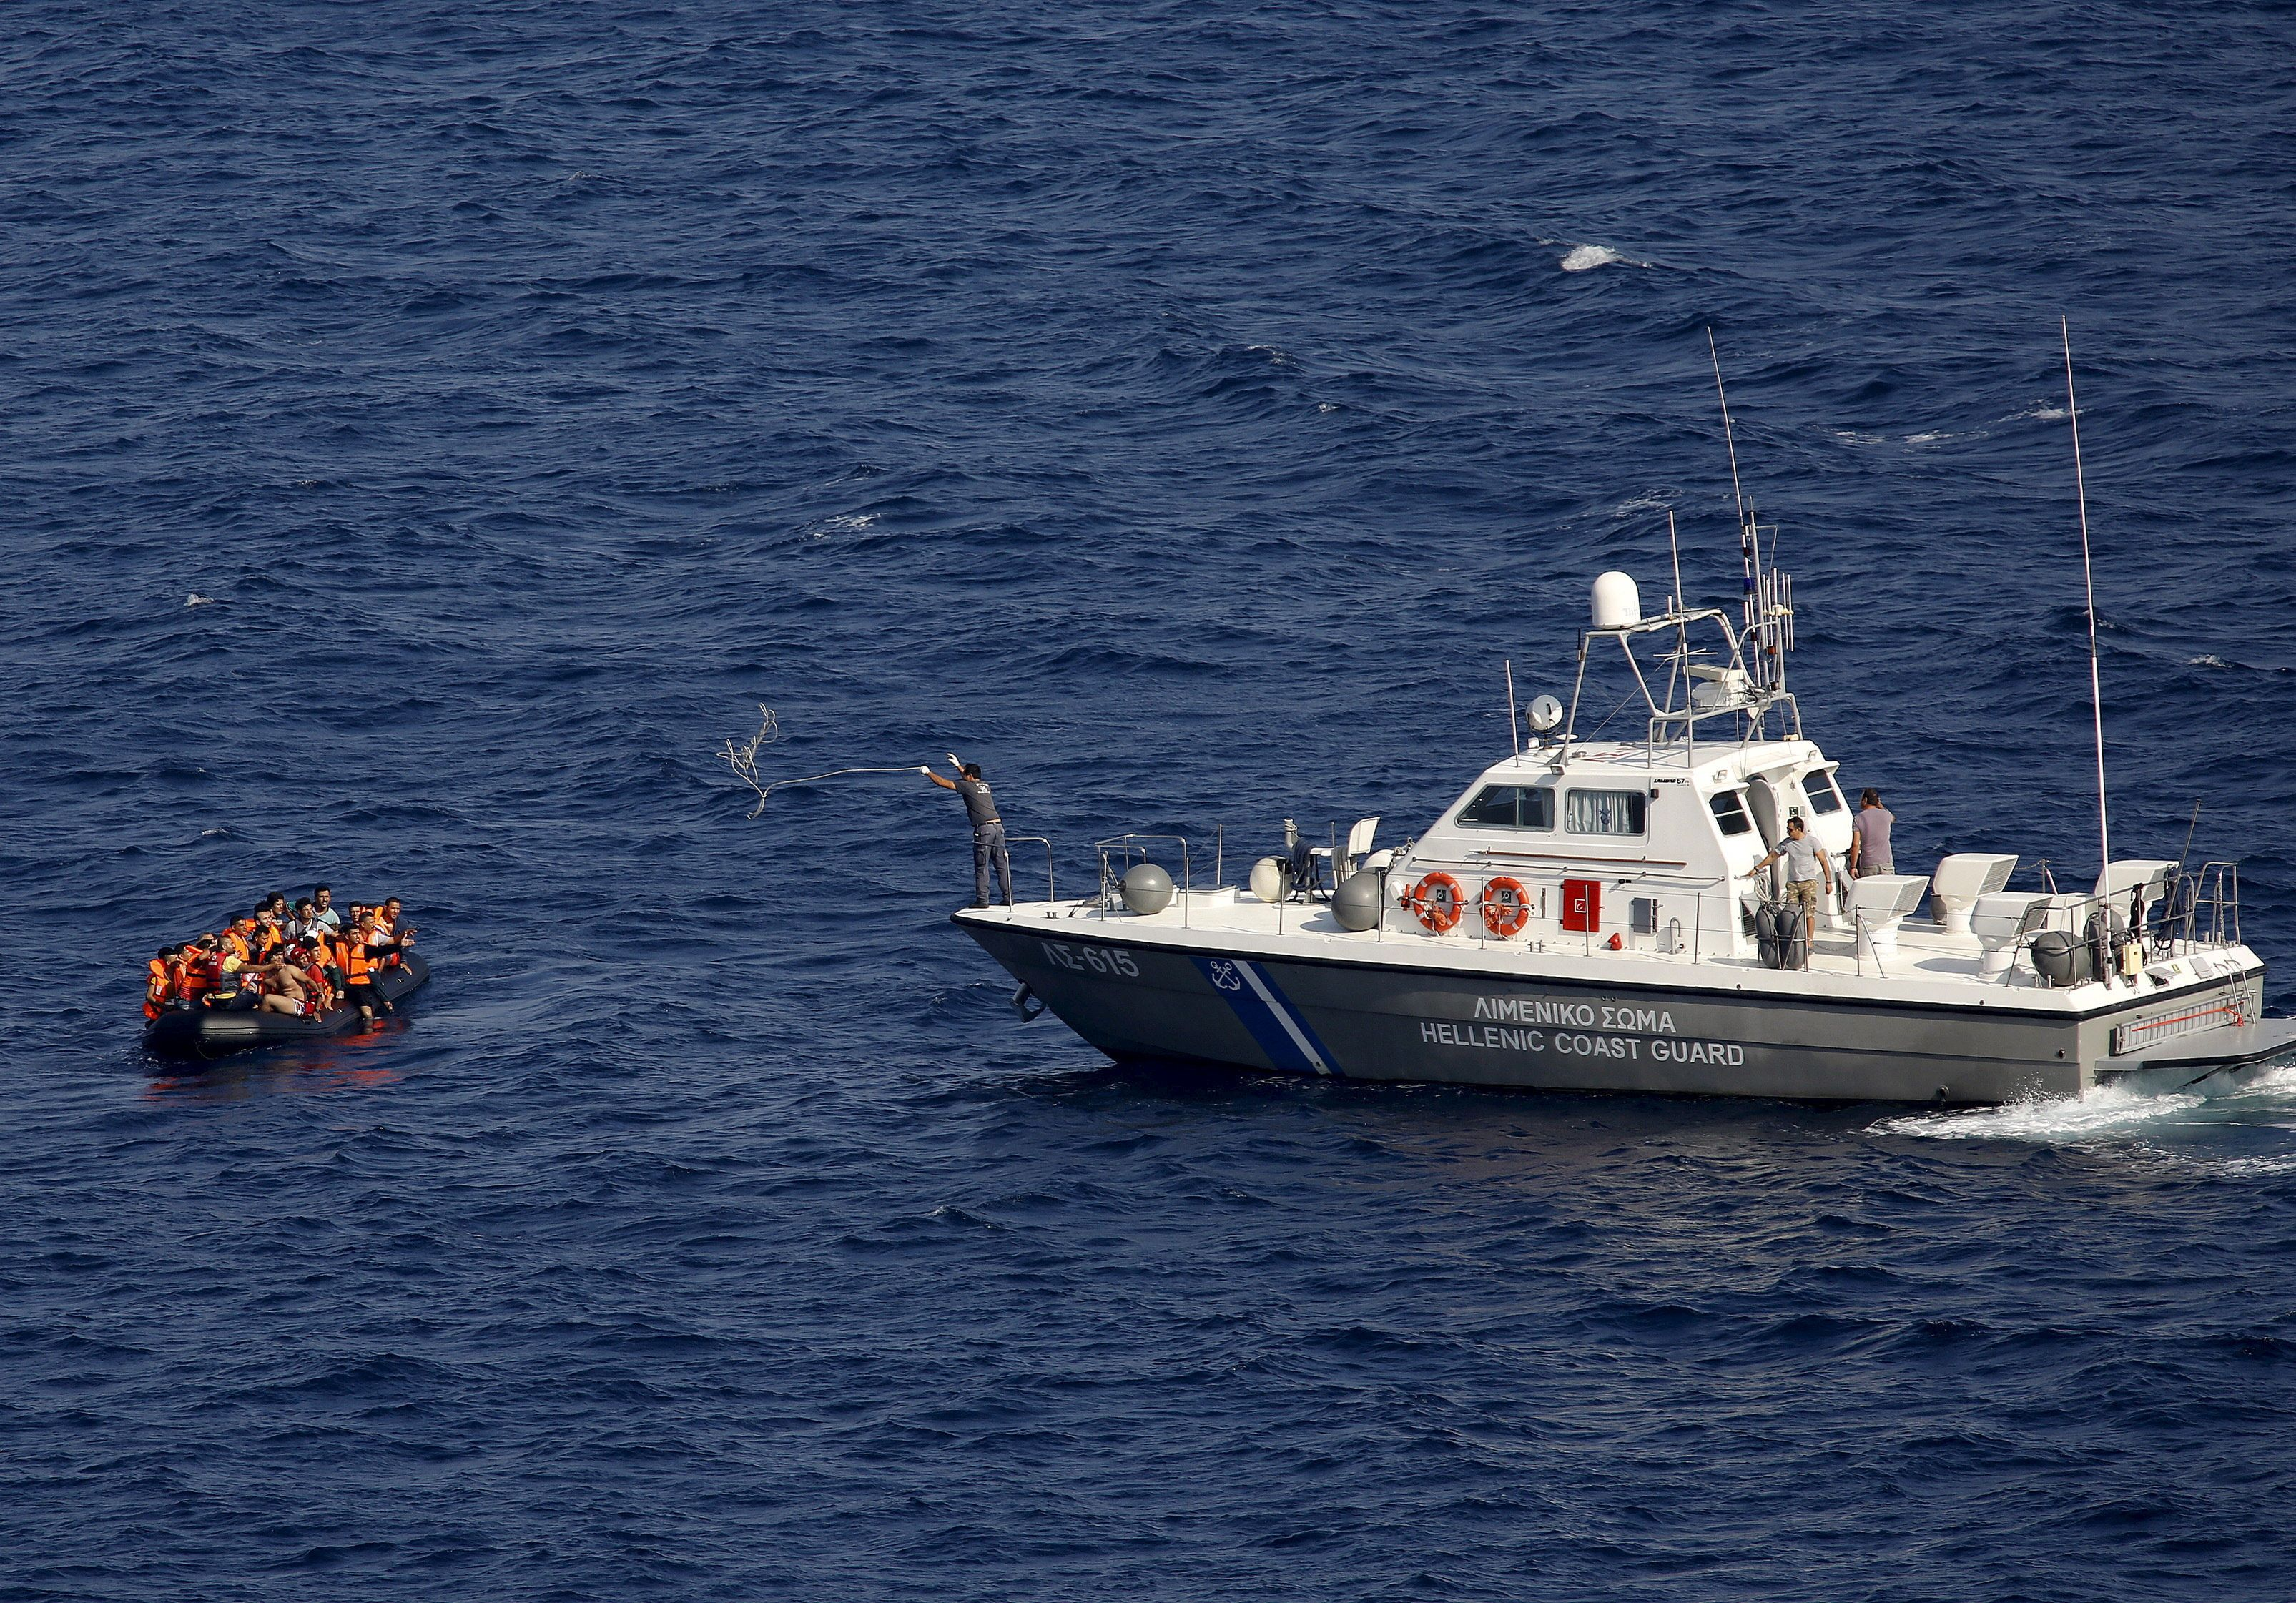 At Least 16 Dead After Migrant Boat Capsizes Off Greek Coast